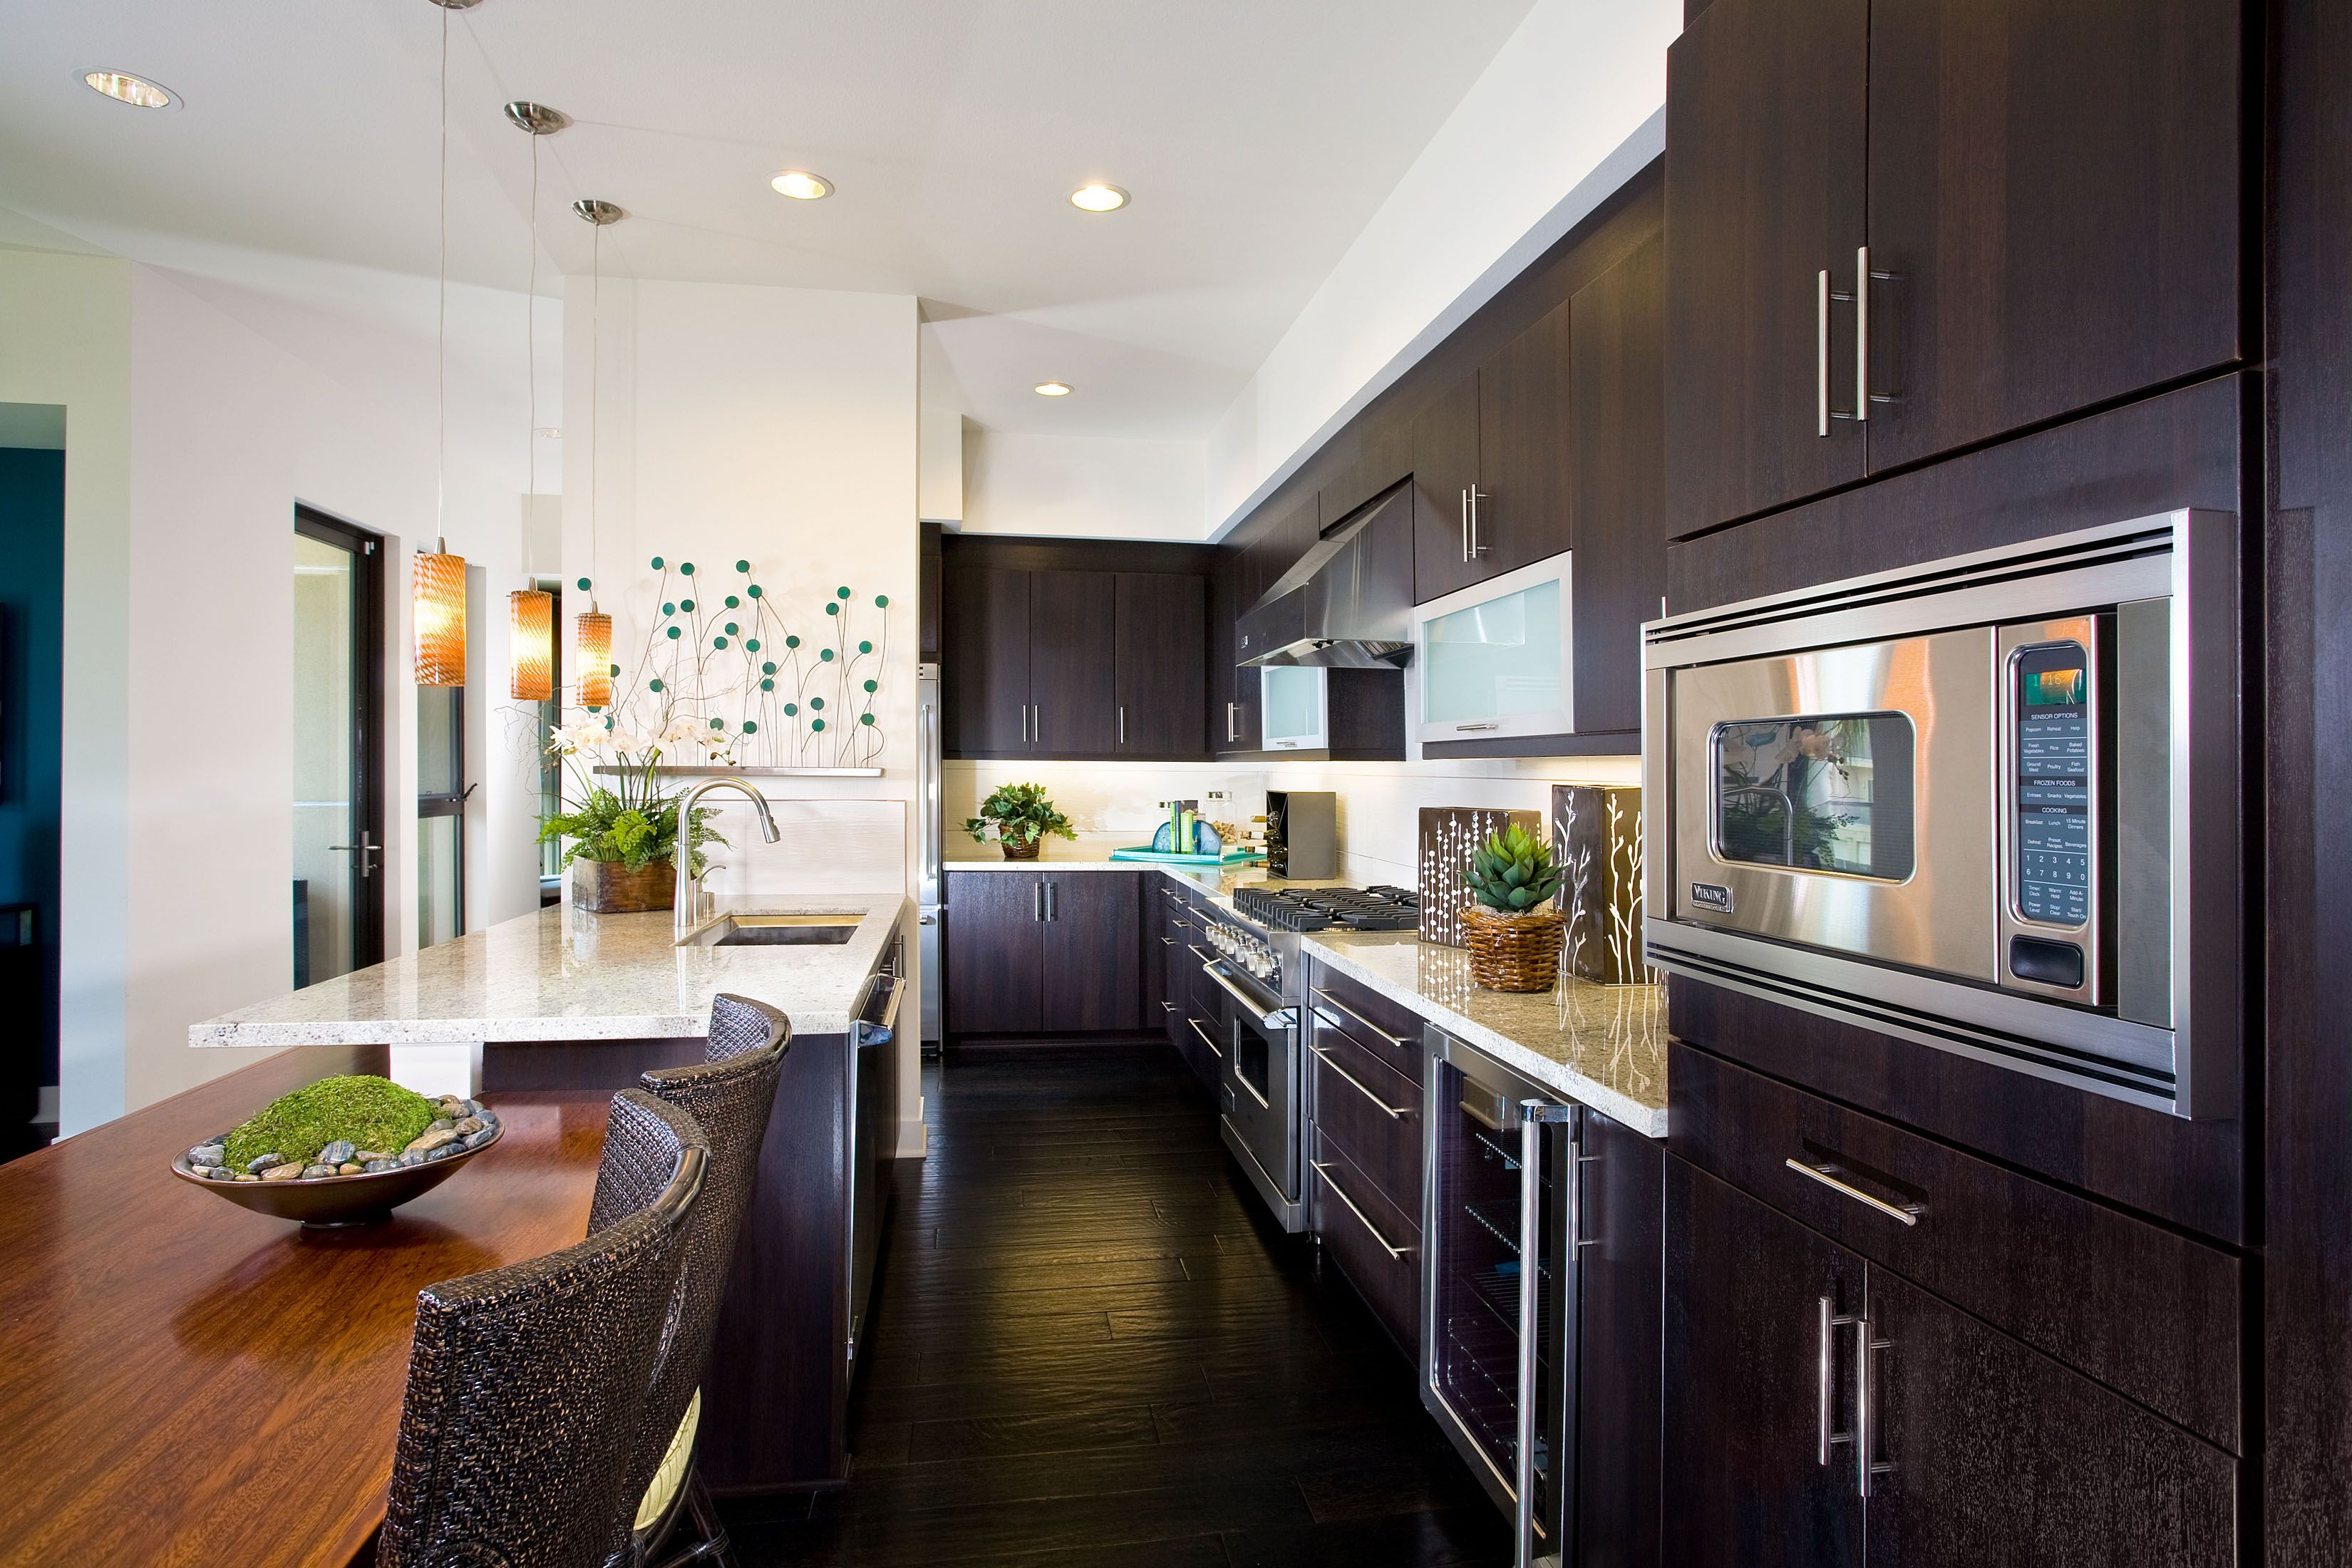 Frameless Cabinetry Lenox Thermofoil Wengi Finish Frameless Cabinetry Kitchen Cabinet Design Kitchen Design